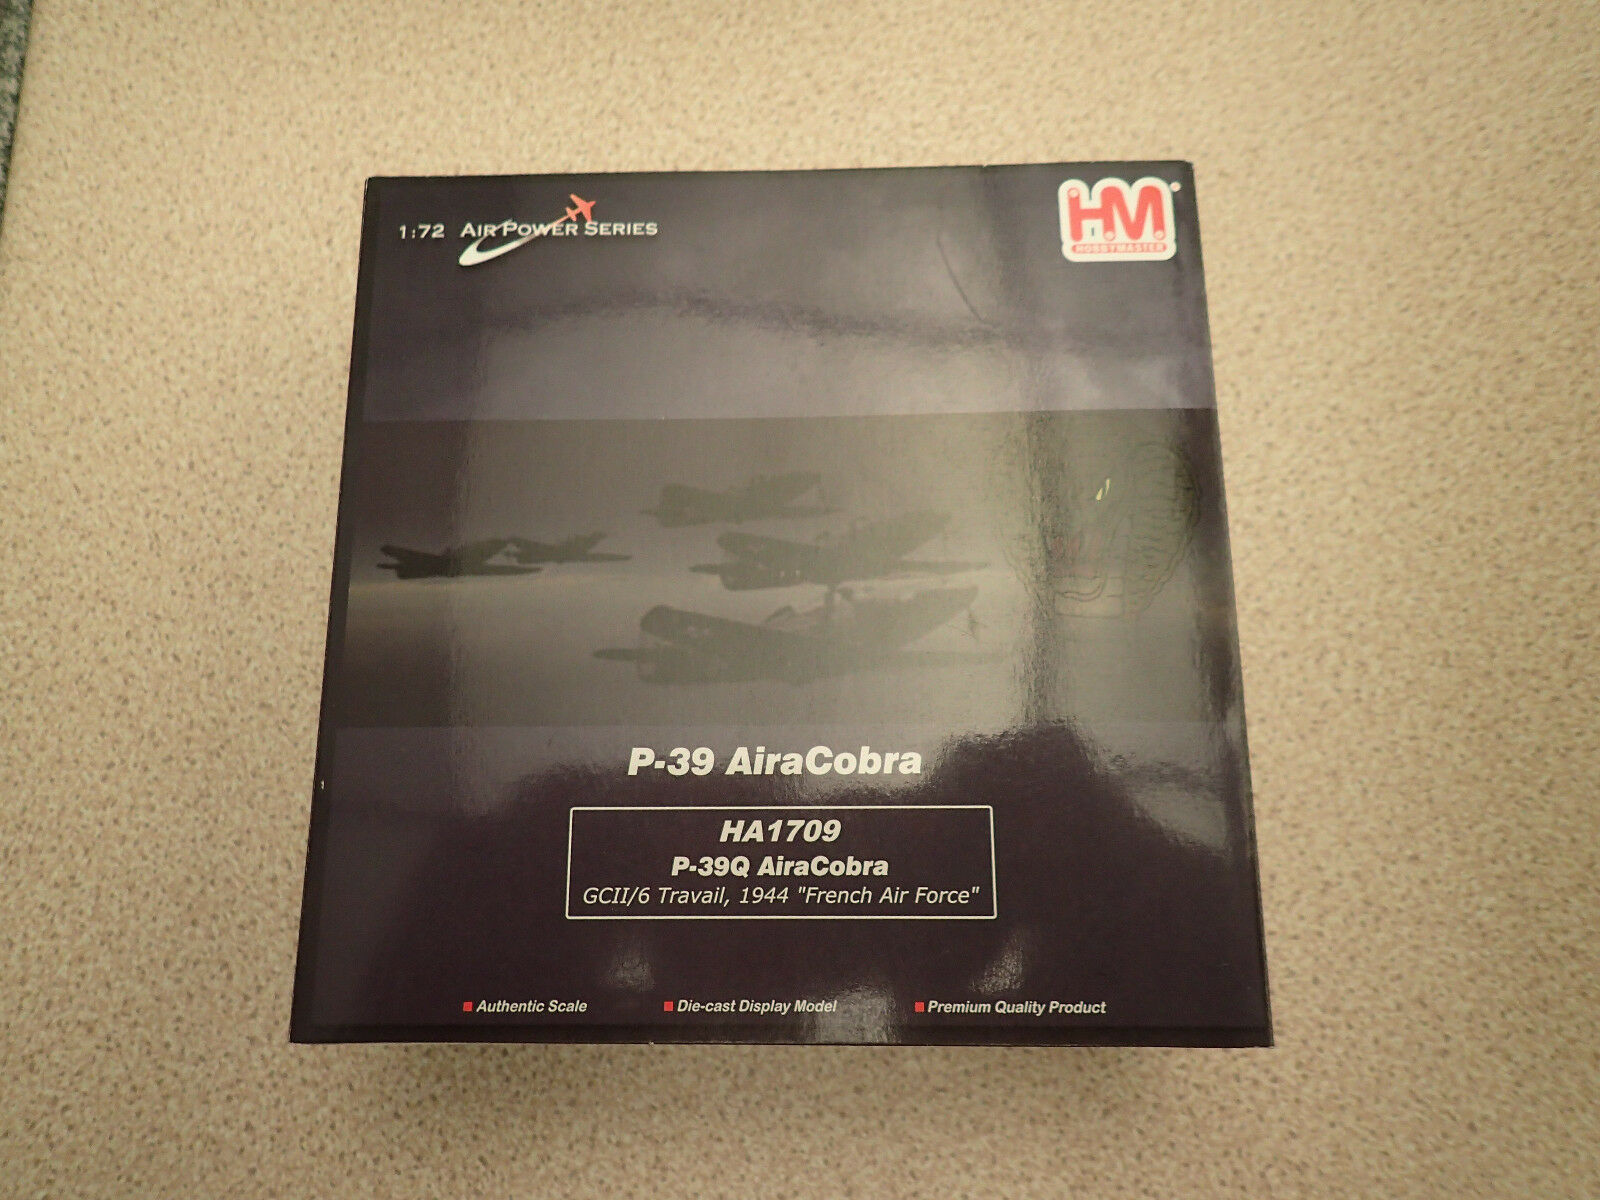 Hobby Master HA1709 P-39Q AiraCobra French Air Force 1944, Untouched